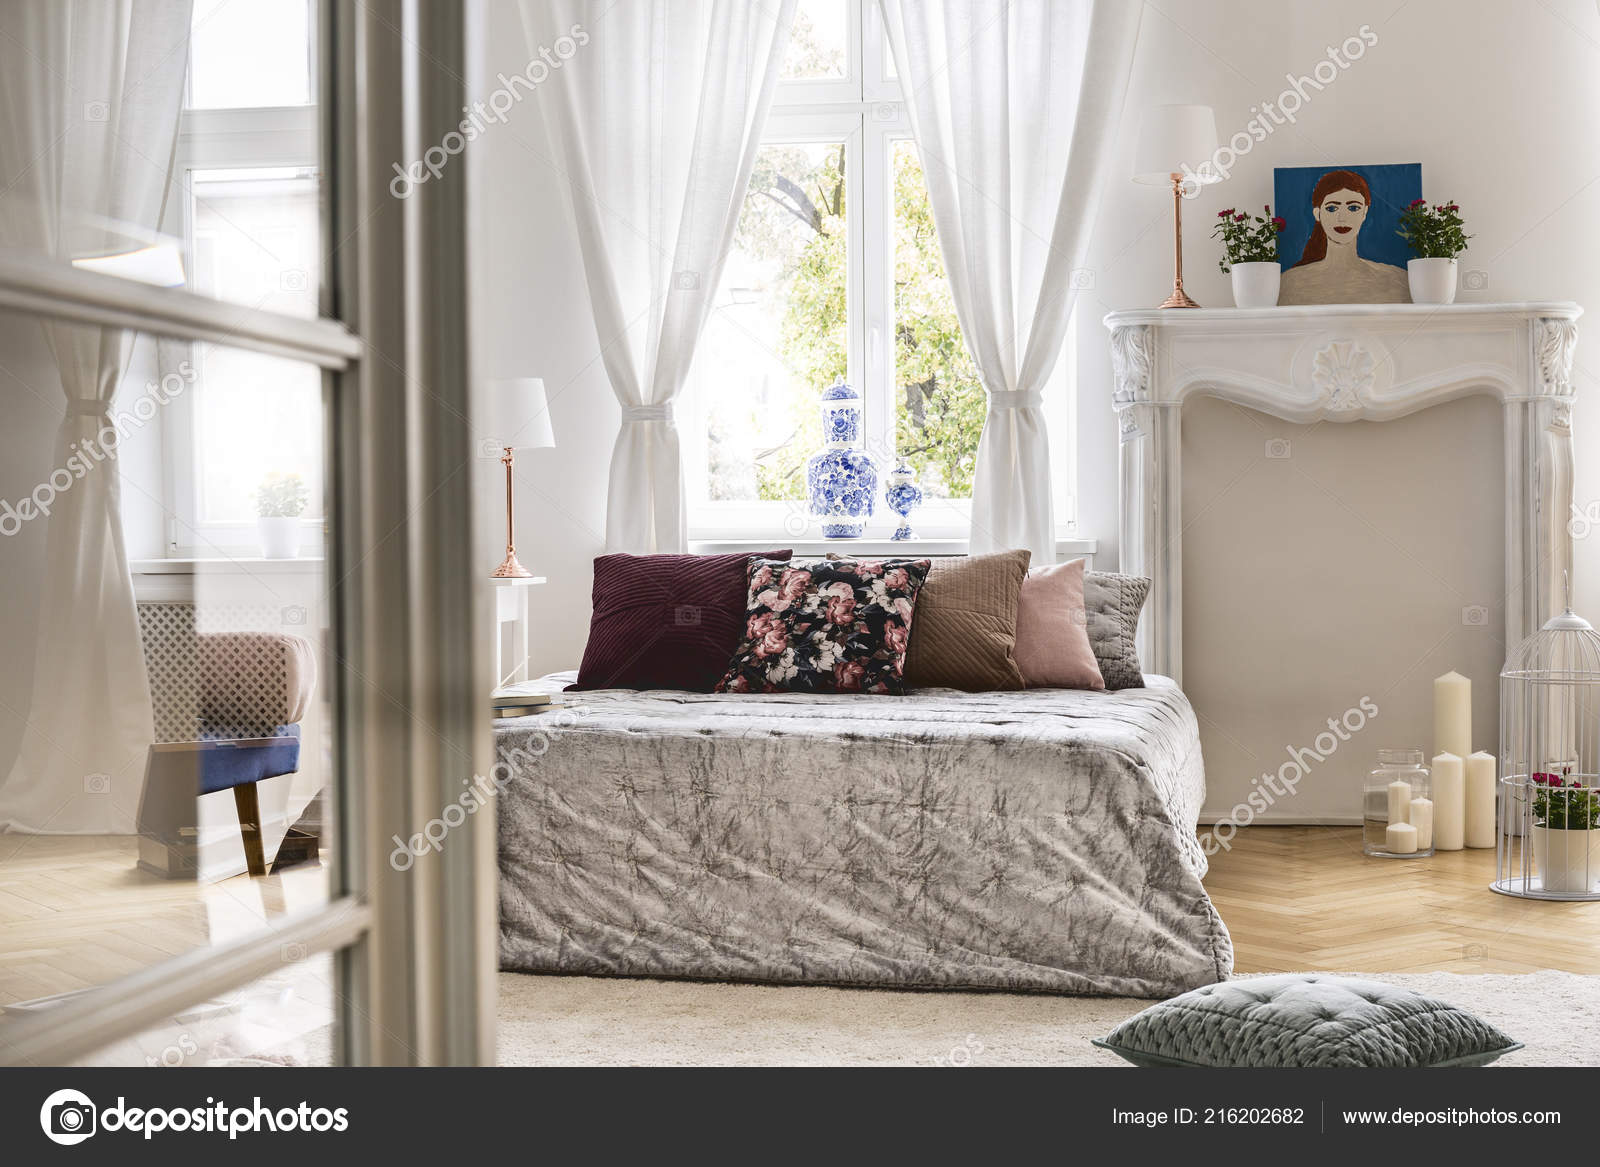 View Different Room Cozy Chic Bedroom Interior Big Bed Pillows